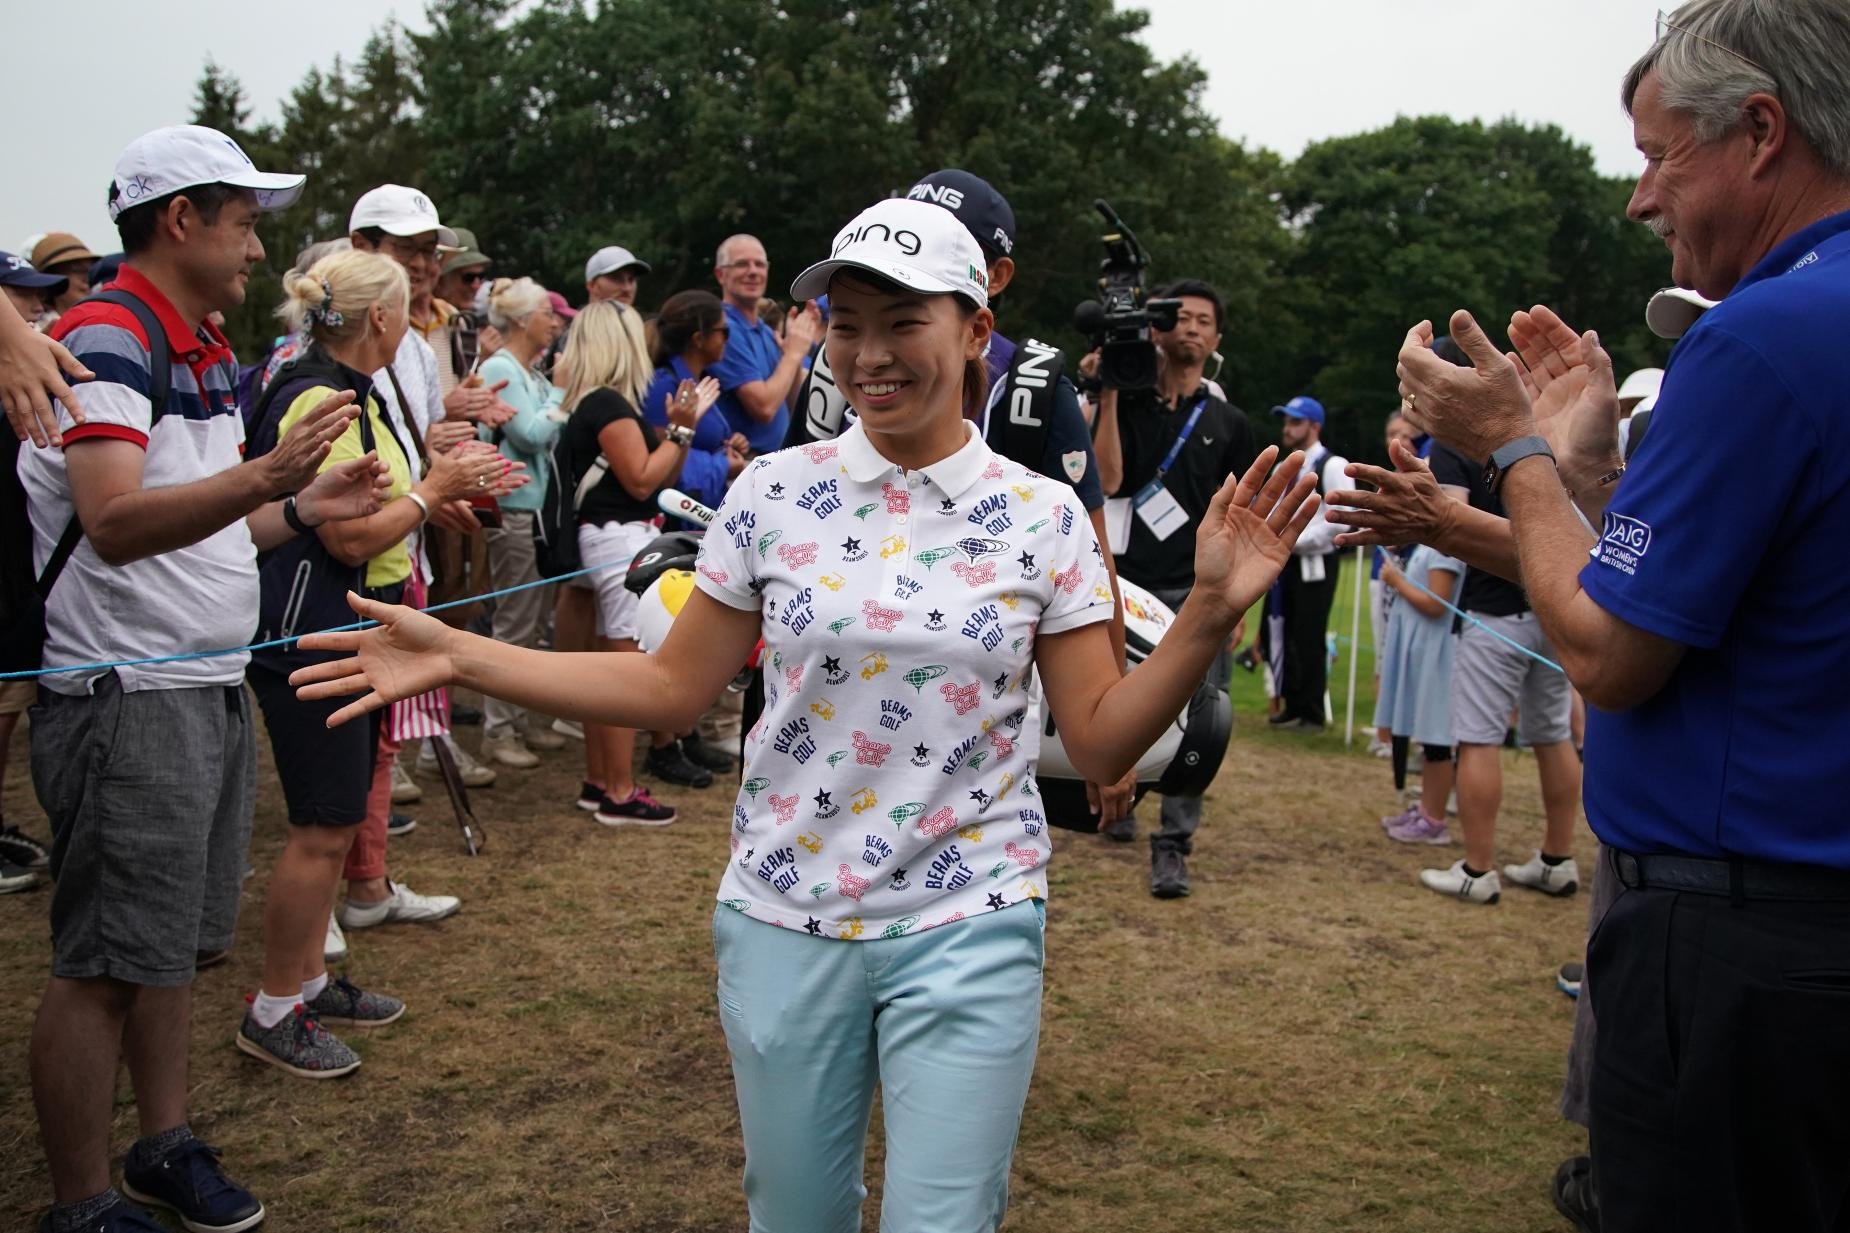 AIG Women's British Open - Day Four